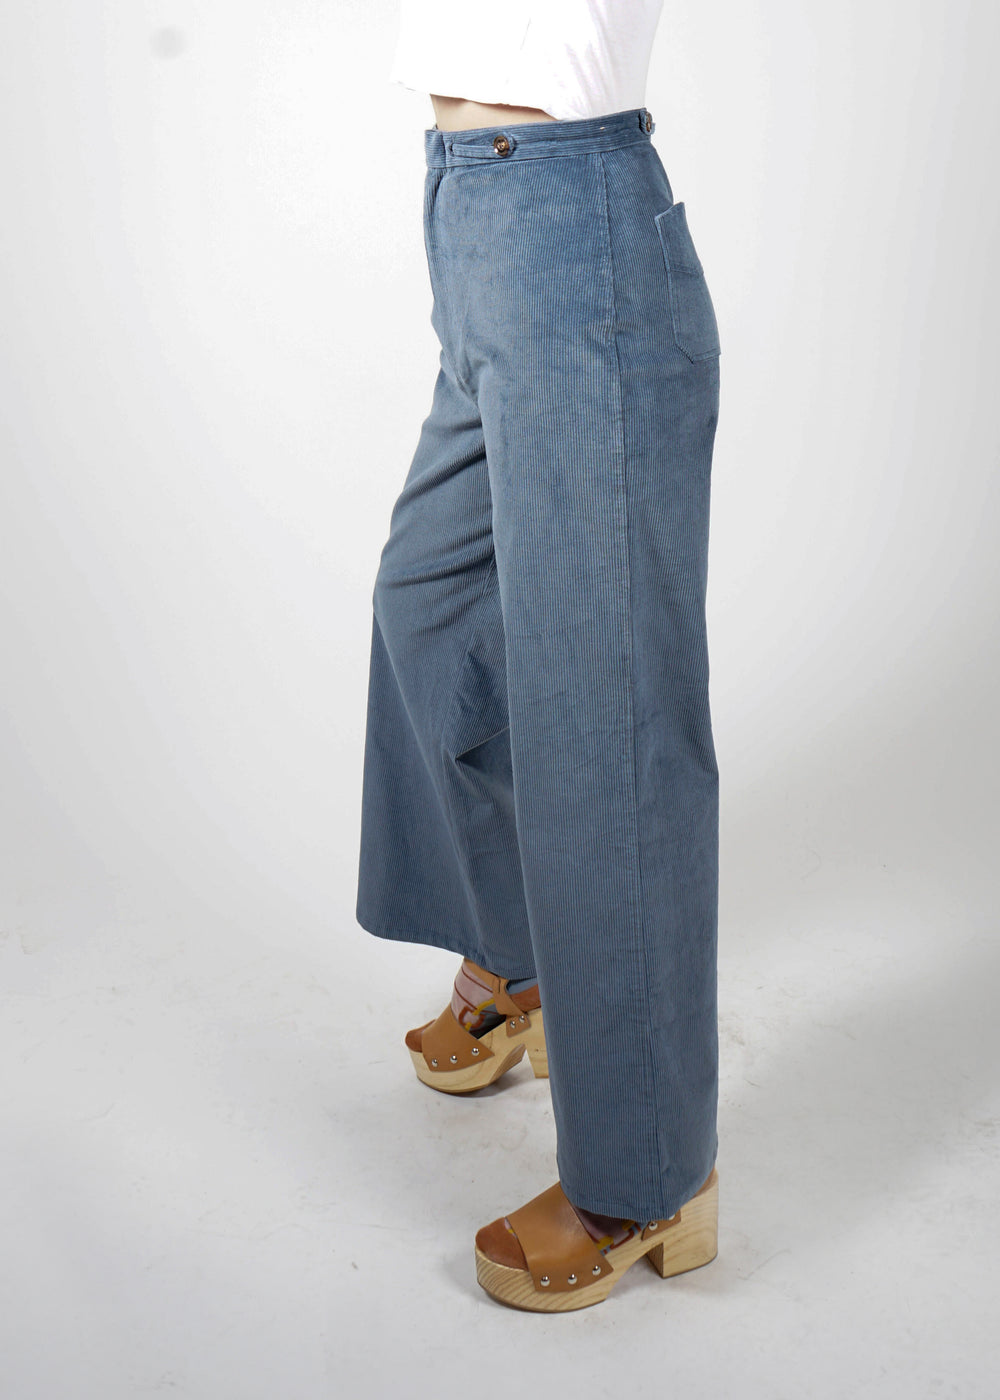 Spencer Pant - Slate Stretch Cord